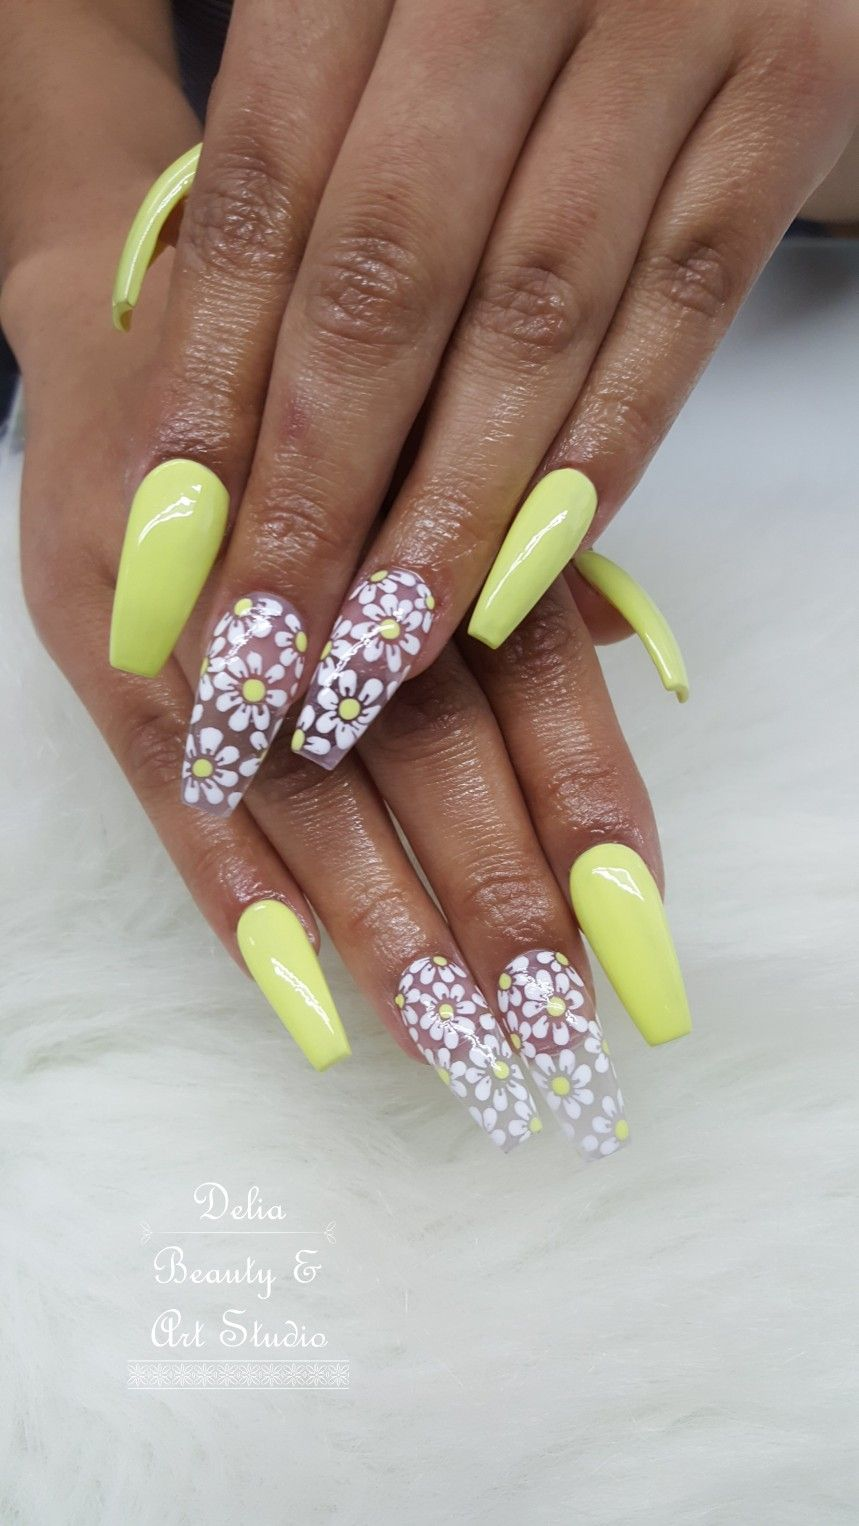 Acrylic Nails Coffin Shape Long Nails Yellow Nails Flower Design